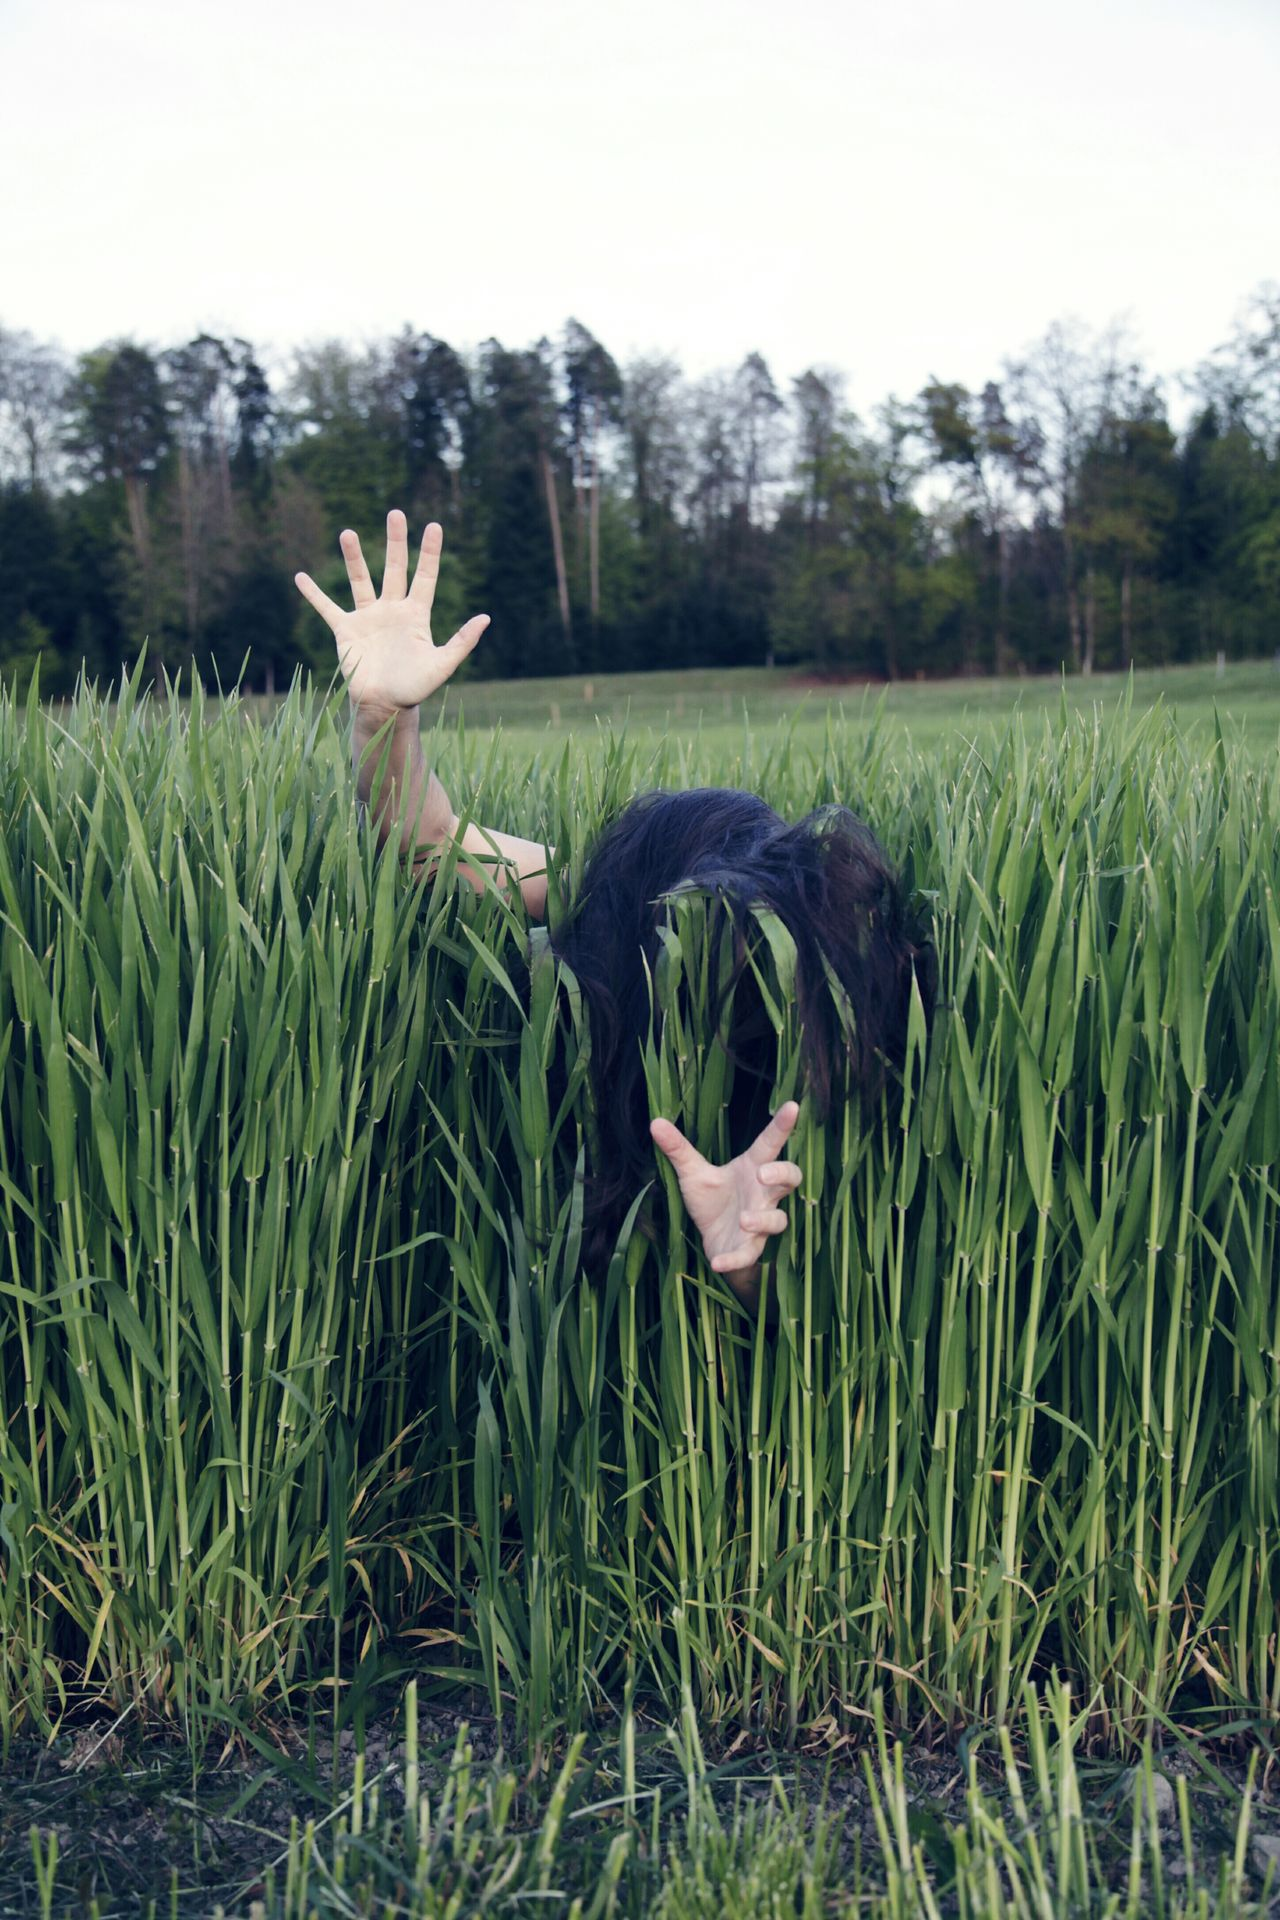 Grass Field Human Hand Hair Long Hair Green Color Grass Rare View People Expression Perspective Hands Hands Up Outdoors Nature Creative Break The Mold TCPM Art Is Everywhere The Portraitist - 2017 EyeEm Awards BYOPaper! Live For The Story